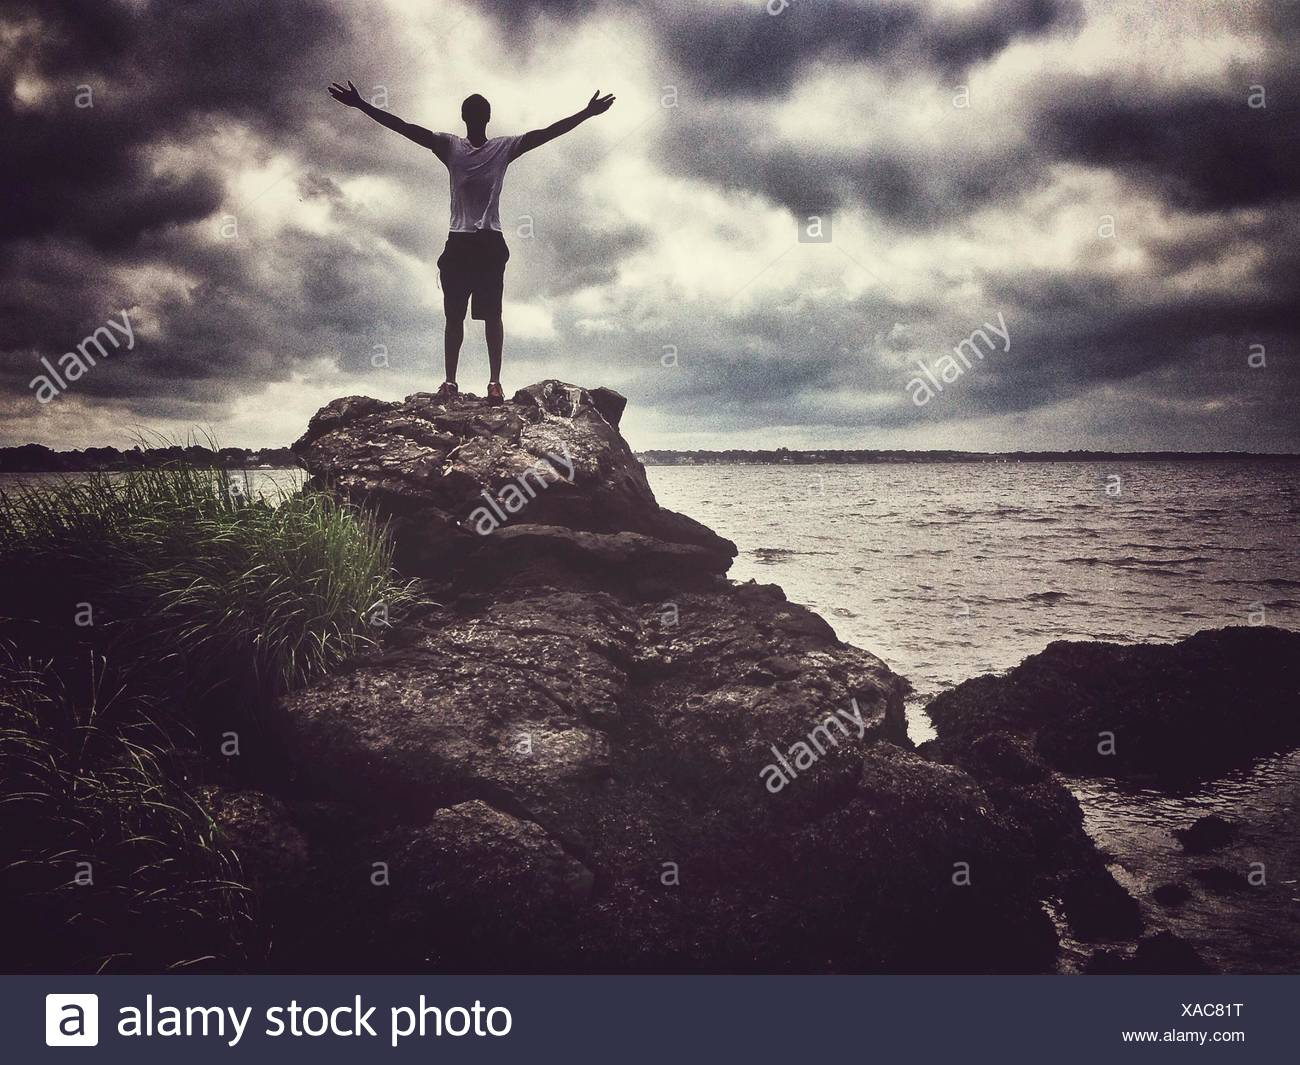 Man With Arms Outstretched Standing On Rocks contre nuages ciel Photo Stock